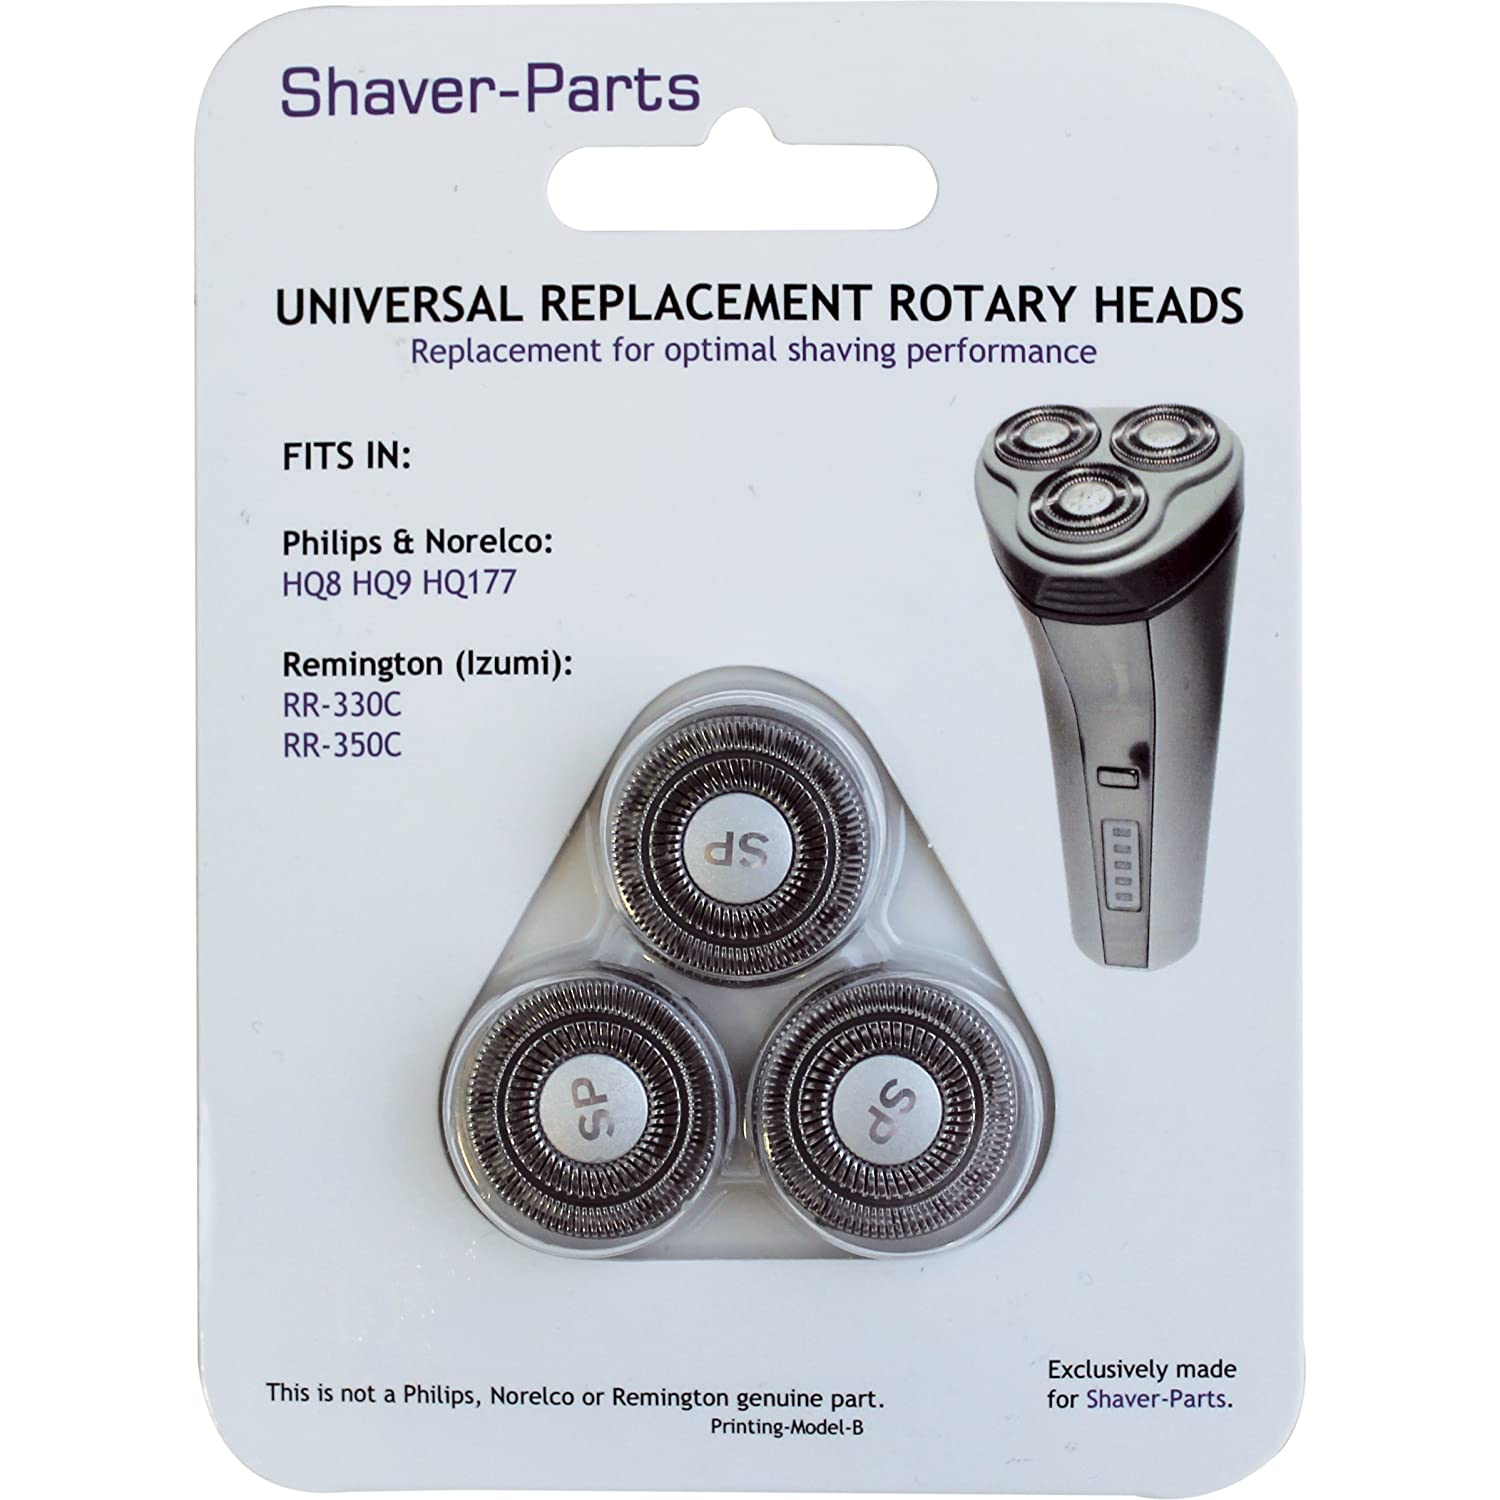 Norelco's compatible Shaving Heads SH30, HQ57, HQ8 (HQ177), Alternative (Fits) for Norelco (Philips) Shavers Shaver-Parts HQ 8